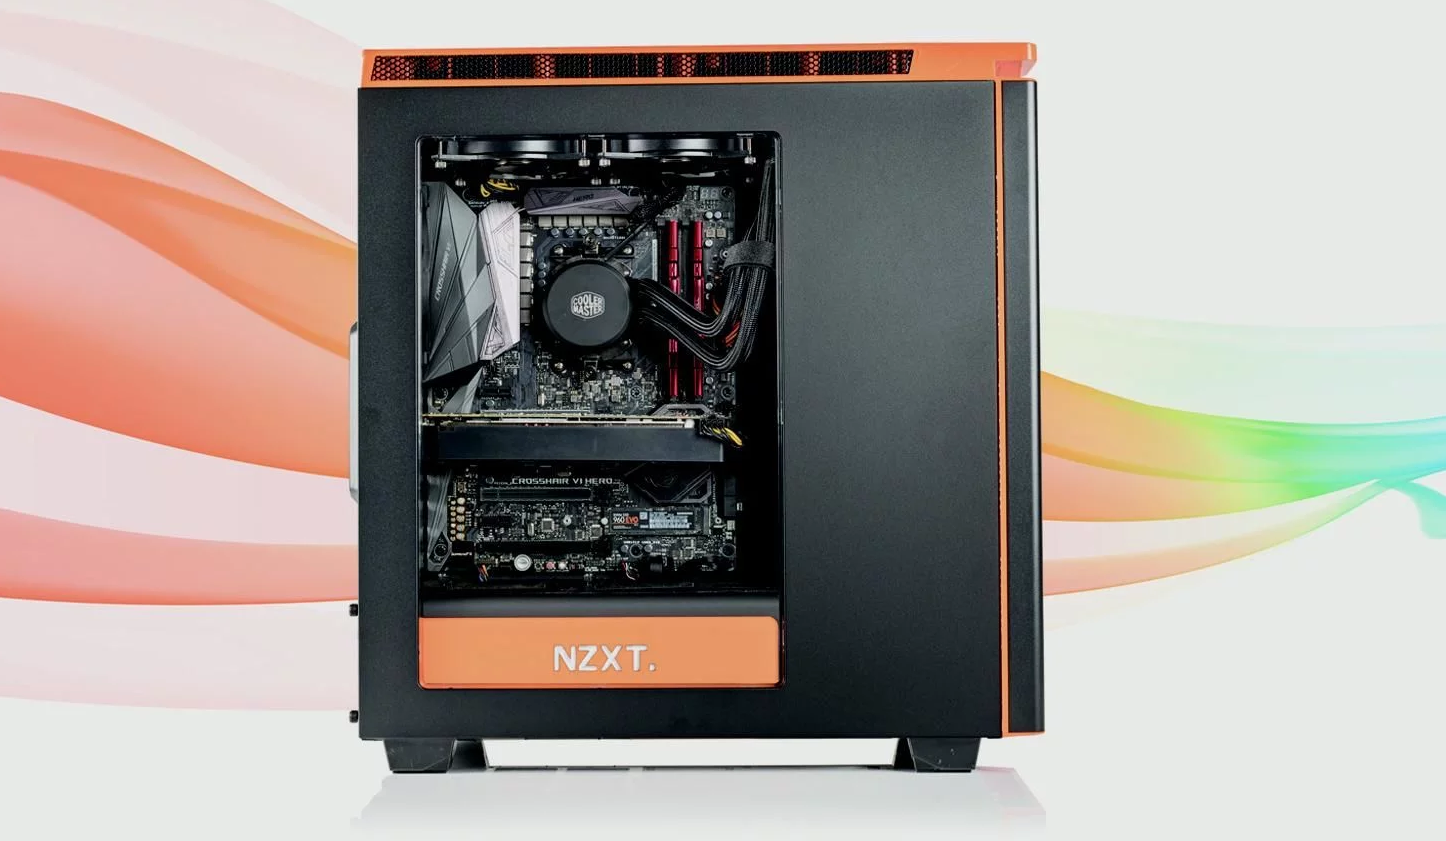 Best Matx Case 2021 Best Gaming PC Cases In 2020 | Player.One